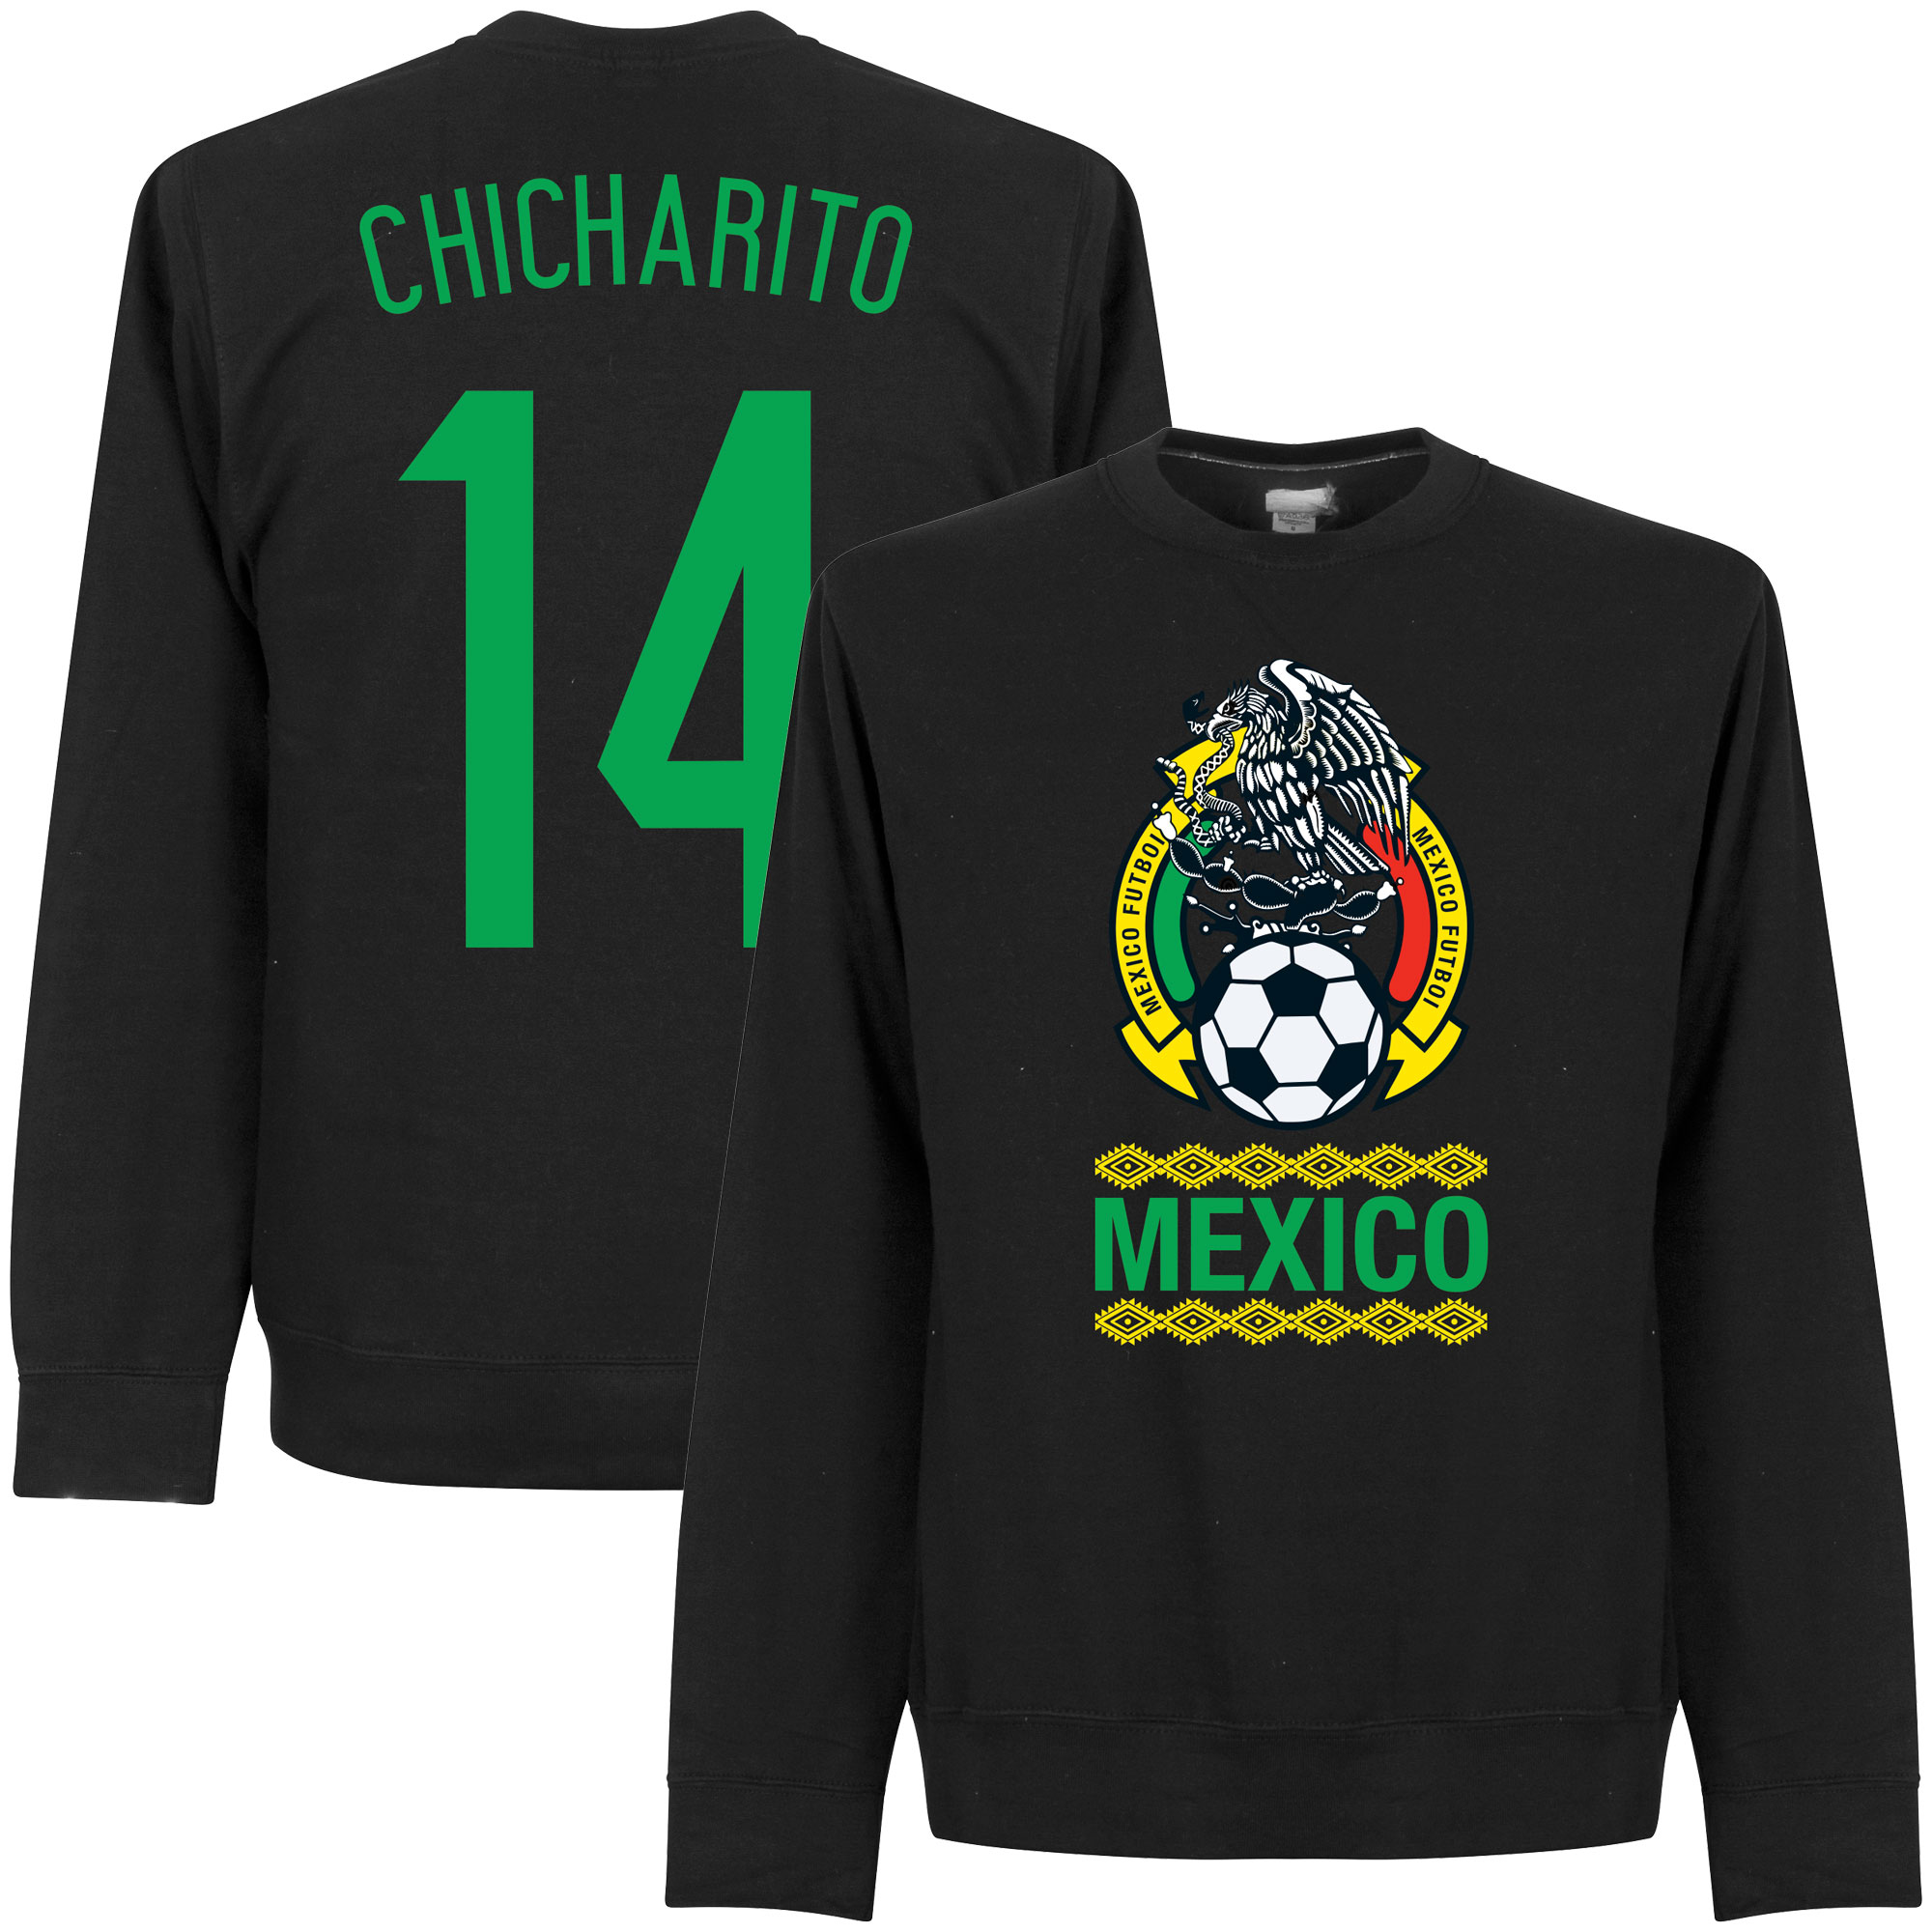 Mexico Chicharito Sweatshirt - Black - S